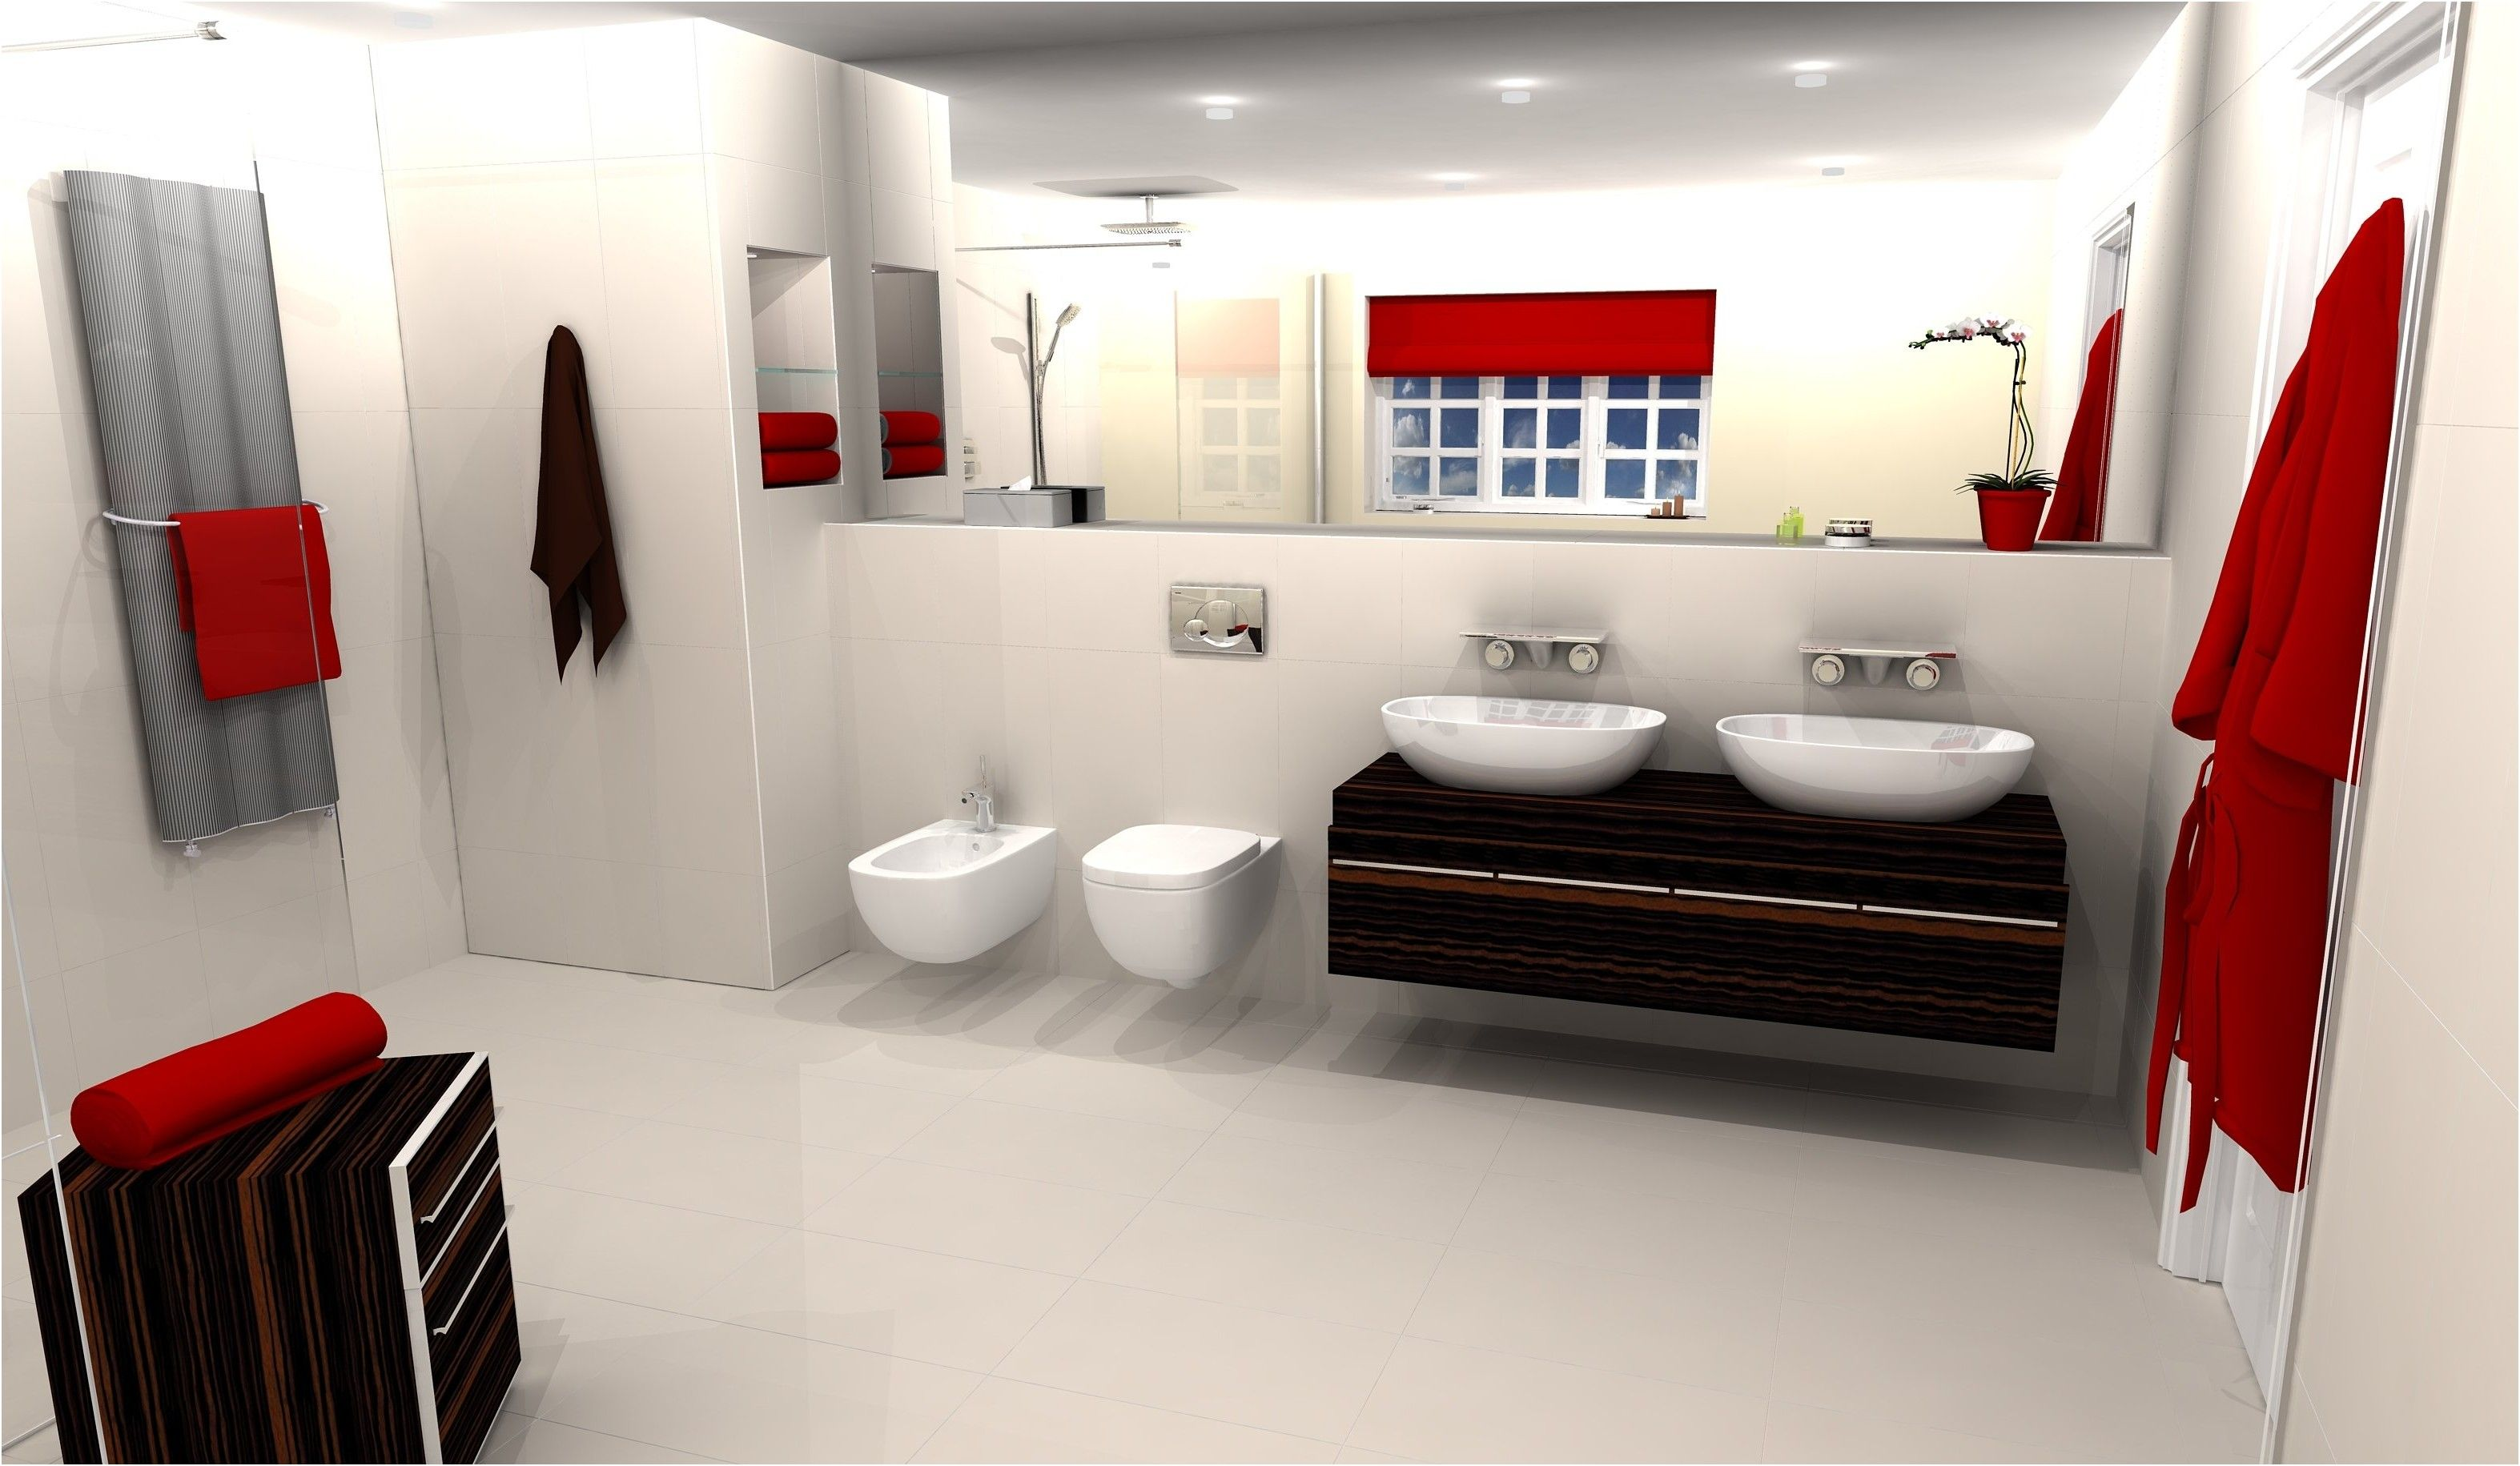 Floor Tile Layout Software Mac Free Architectural Design Software From Free Bathroom Design Softw Big Bathroom Designs Bathroom Design Bathroom Design Software